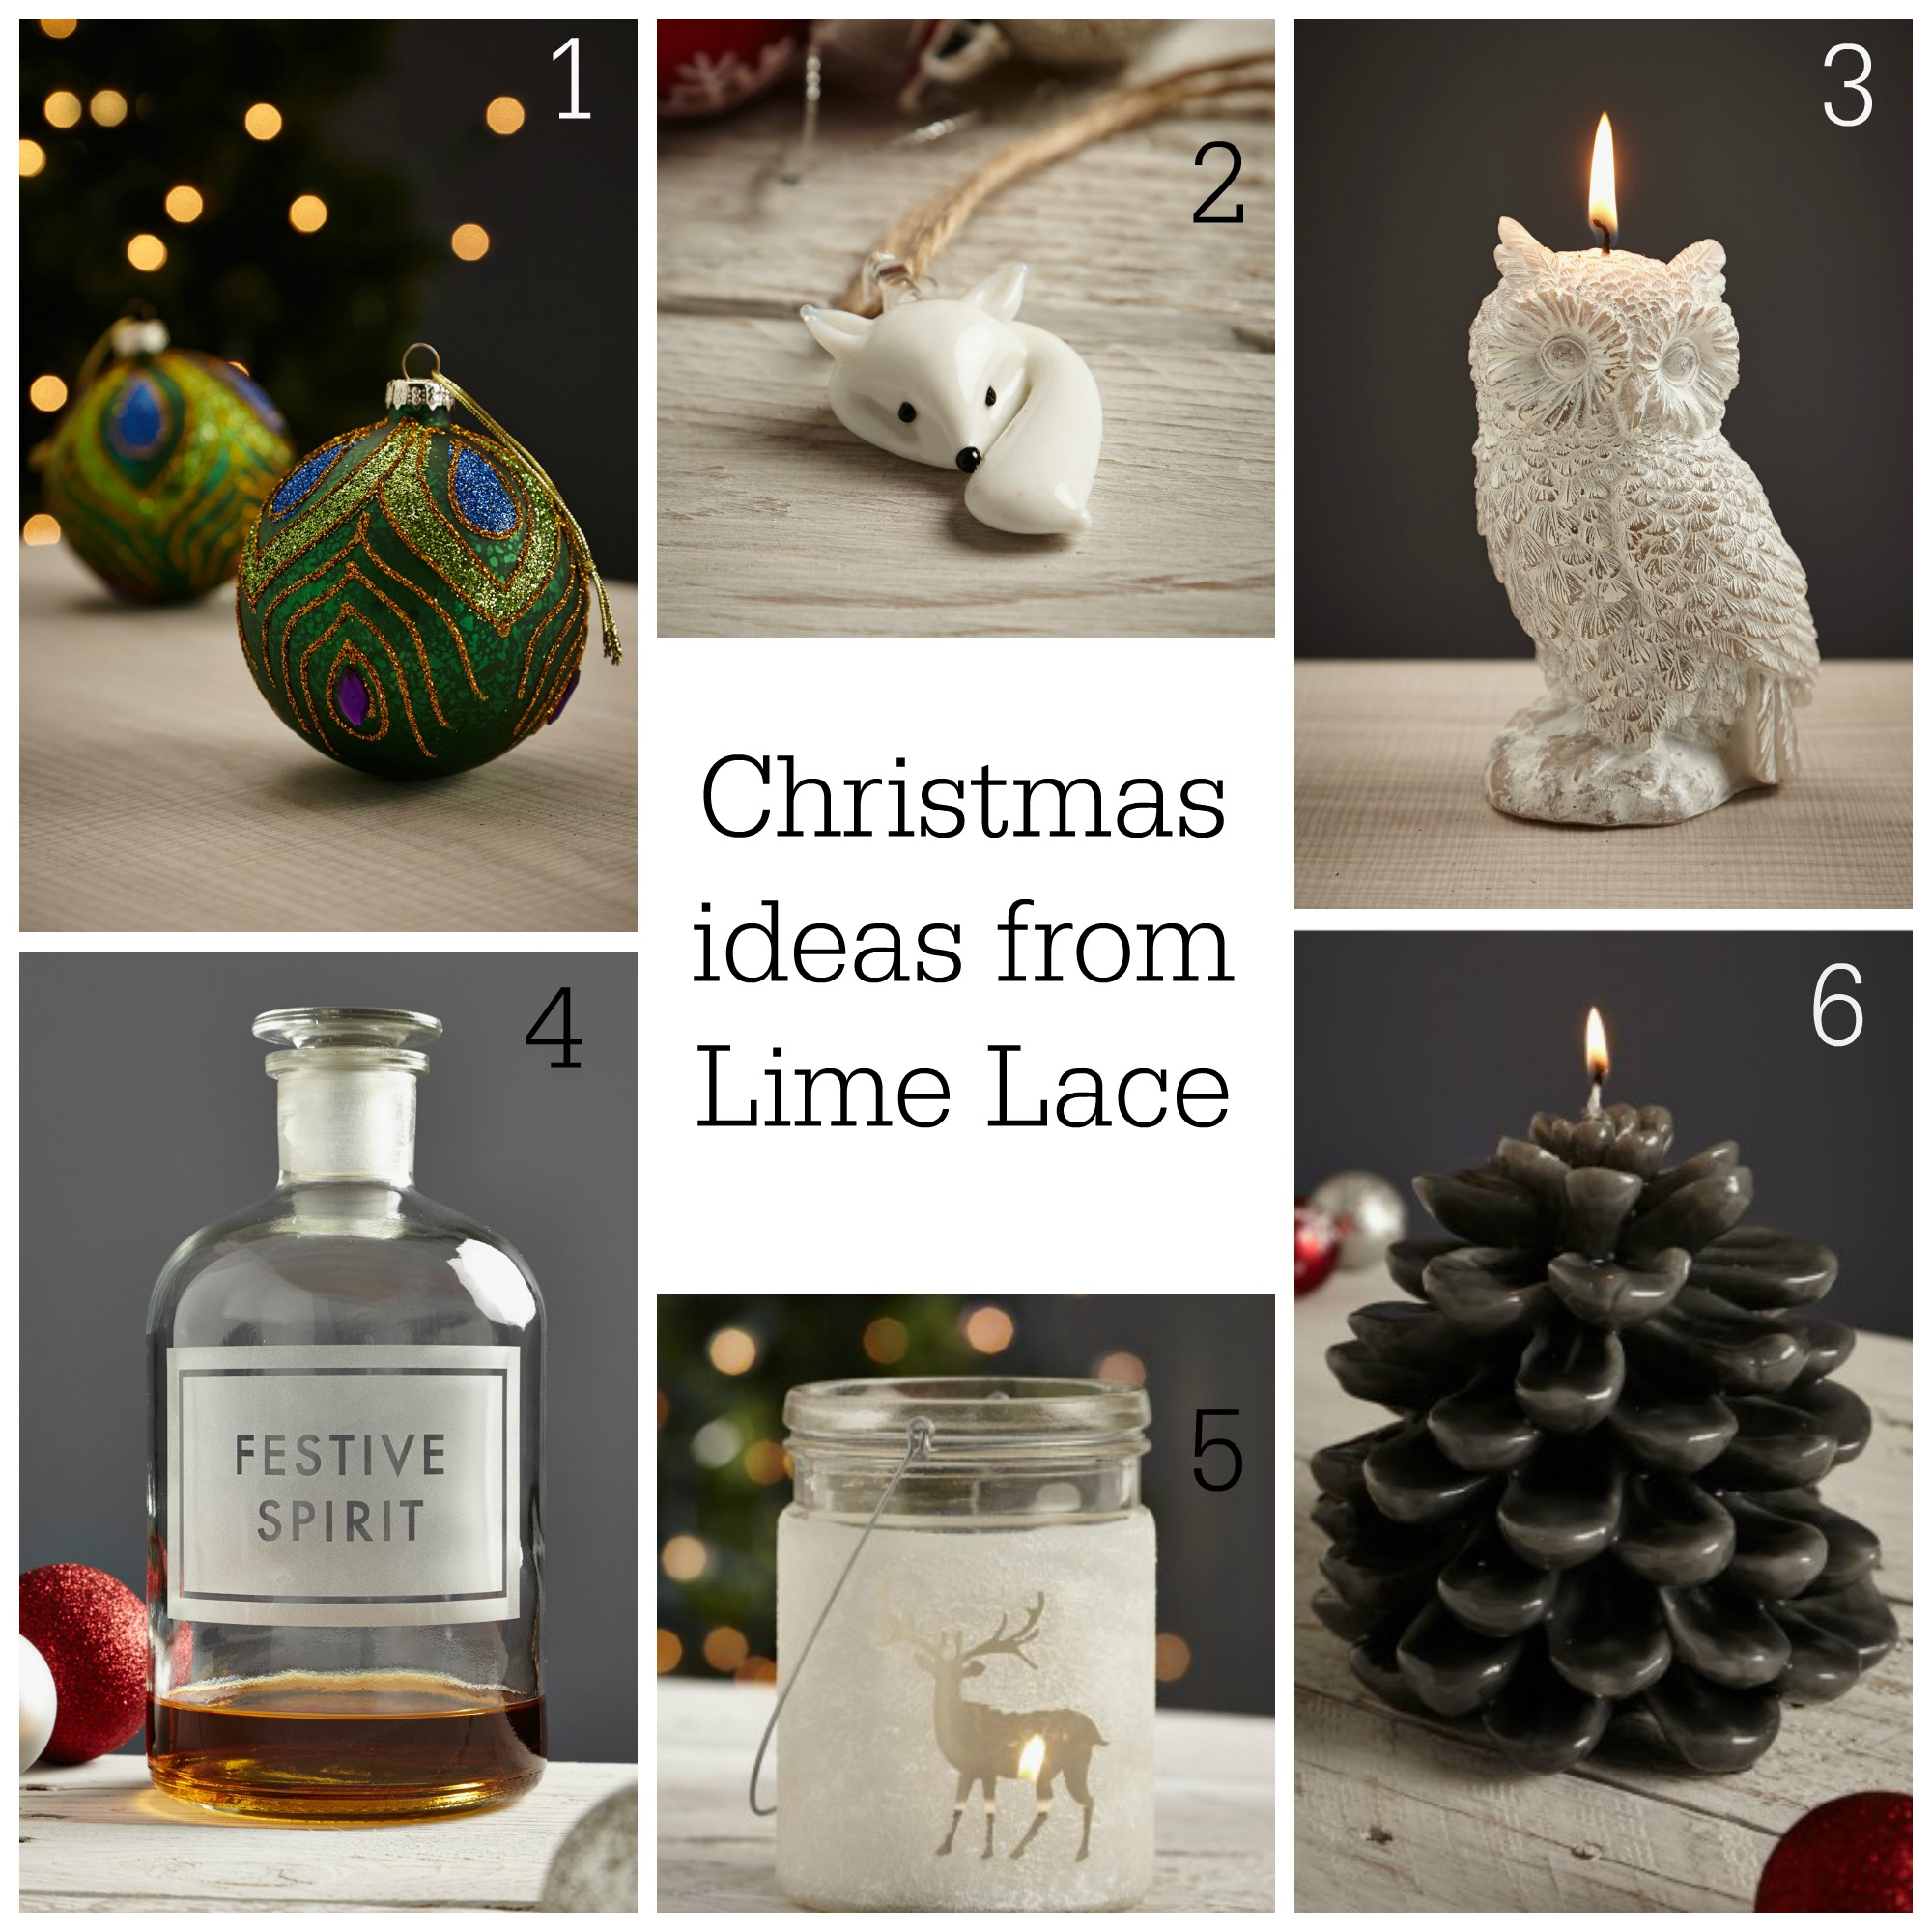 Fresh Home Decor Gift Ideas: Christmas Gifts And Decor Ideas From Lime Lace